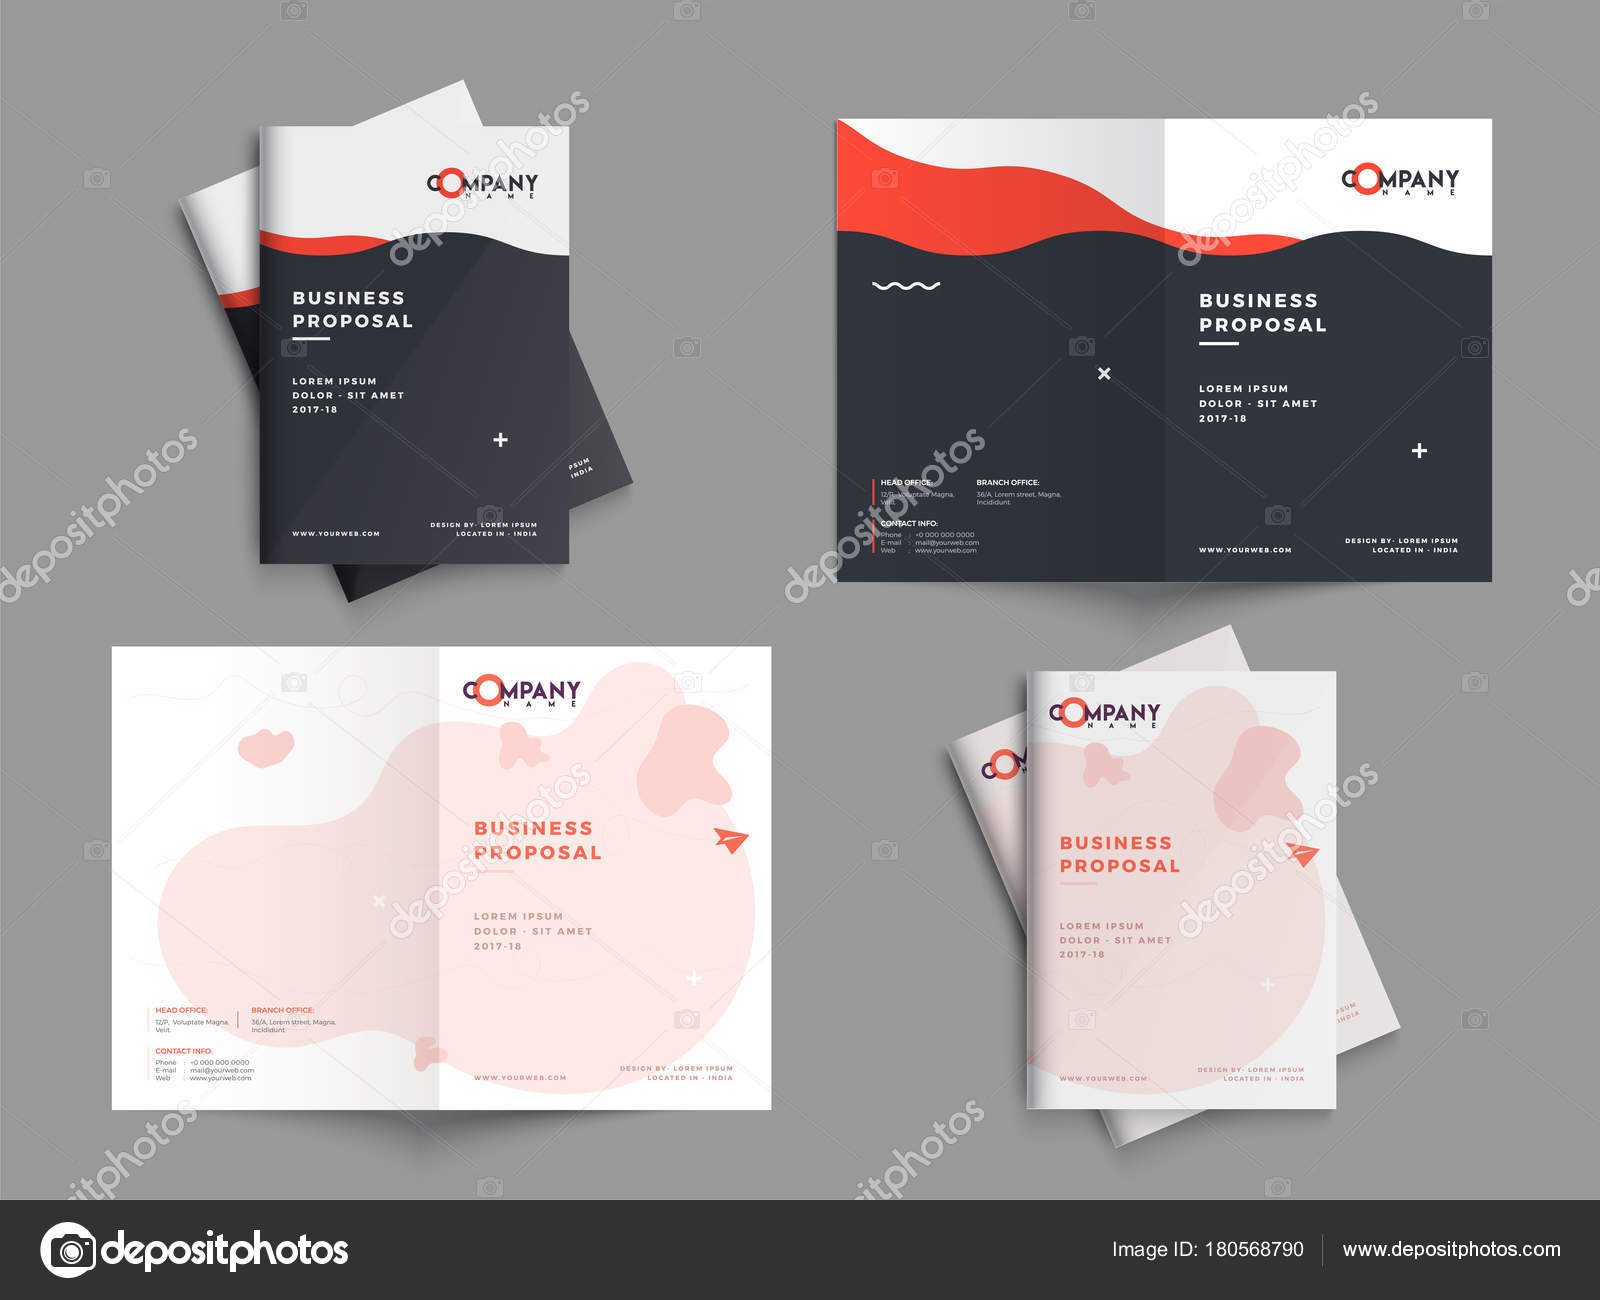 Creative business proposal design corporate template layout wit creative business proposal design corporate template layout wit stock vector cheaphphosting Images